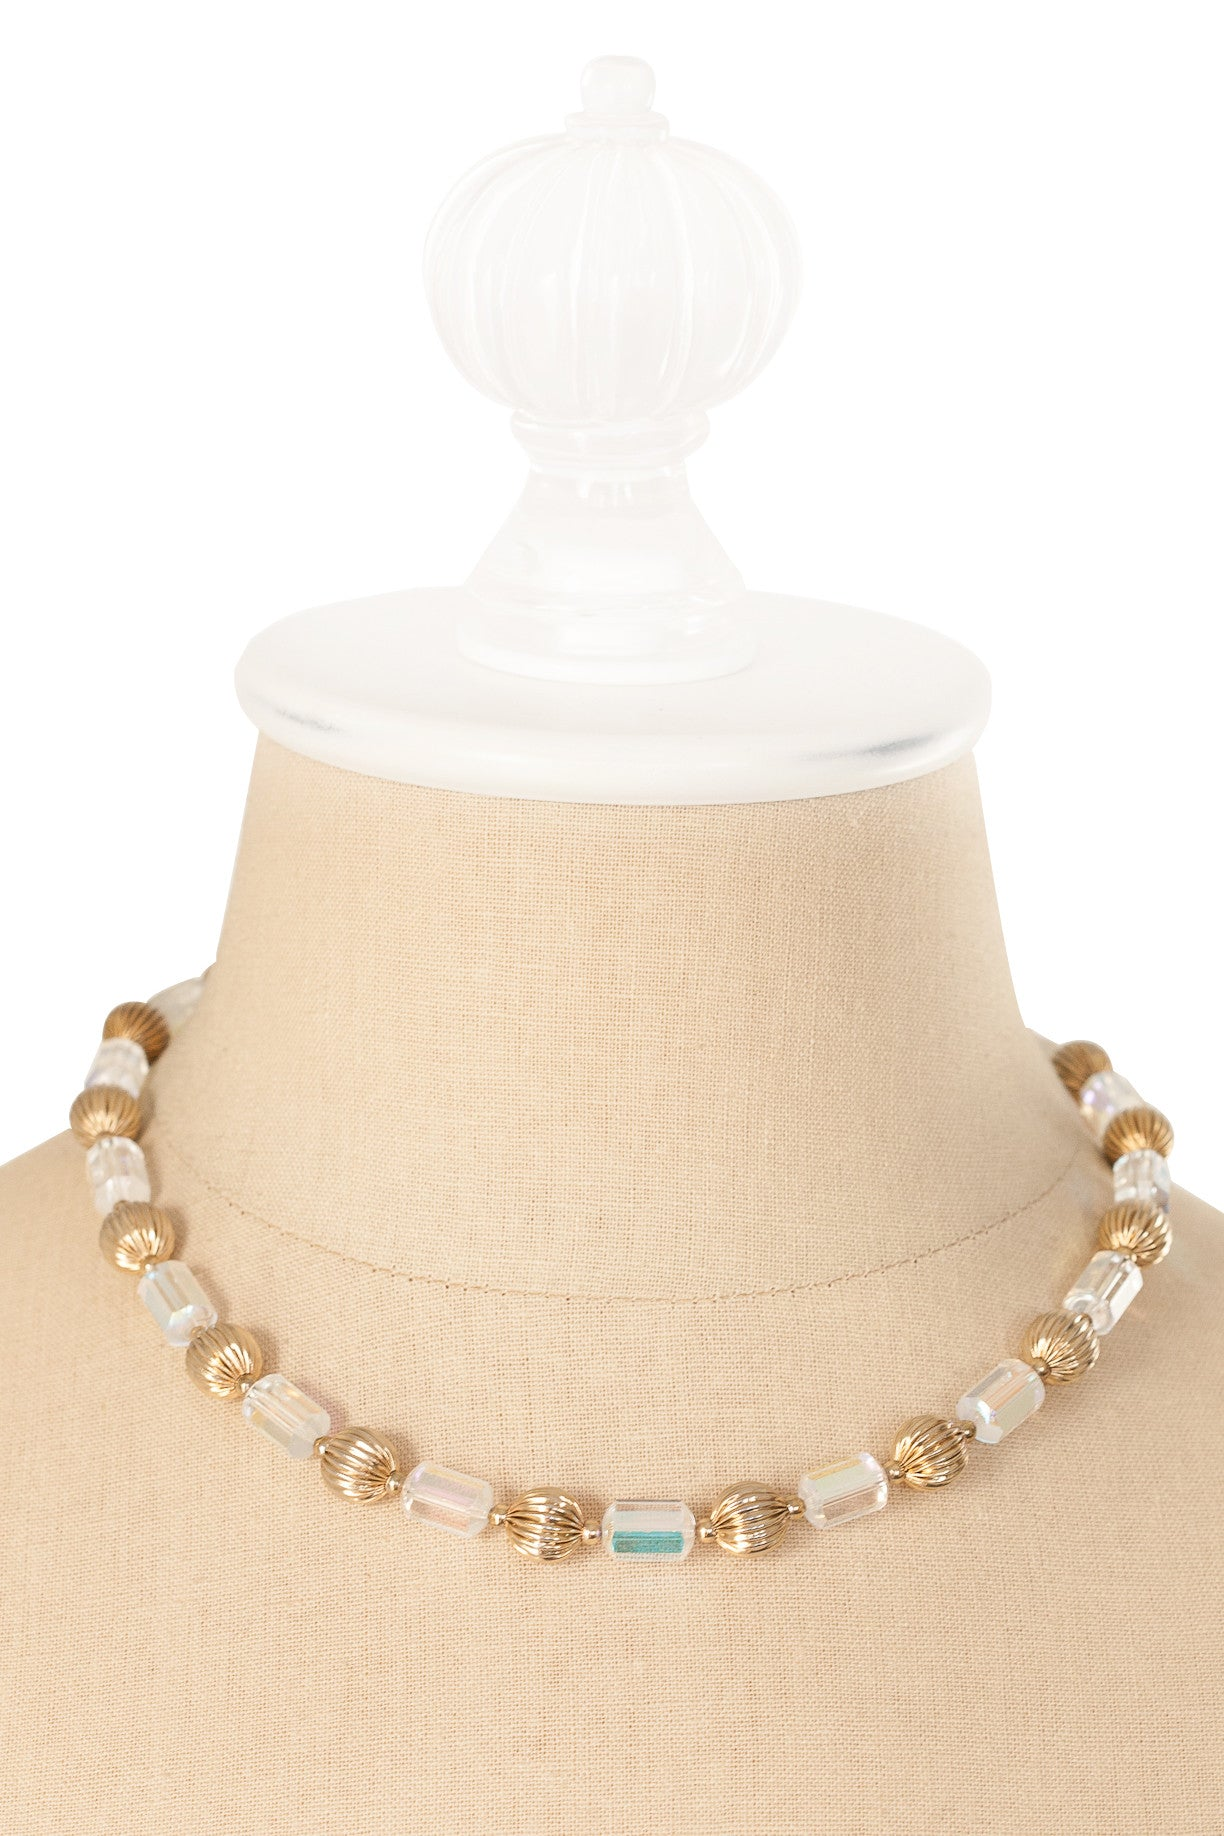 50's__Vintage__Crystal and Gold Necklace